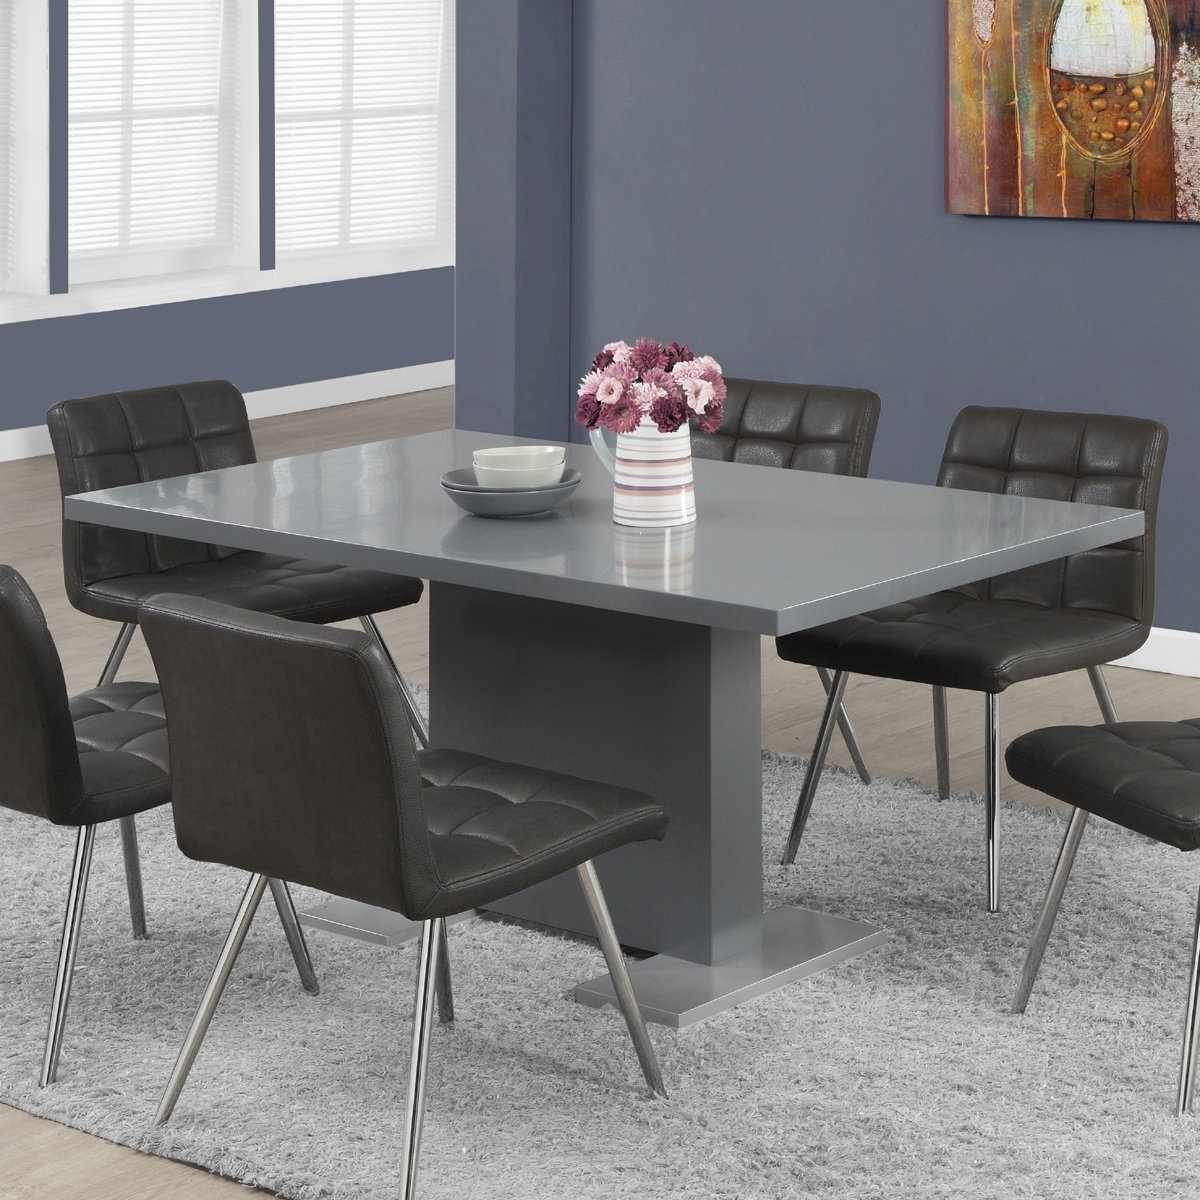 Modgsi Dining Furniture Vancouver (View 22 of 25)